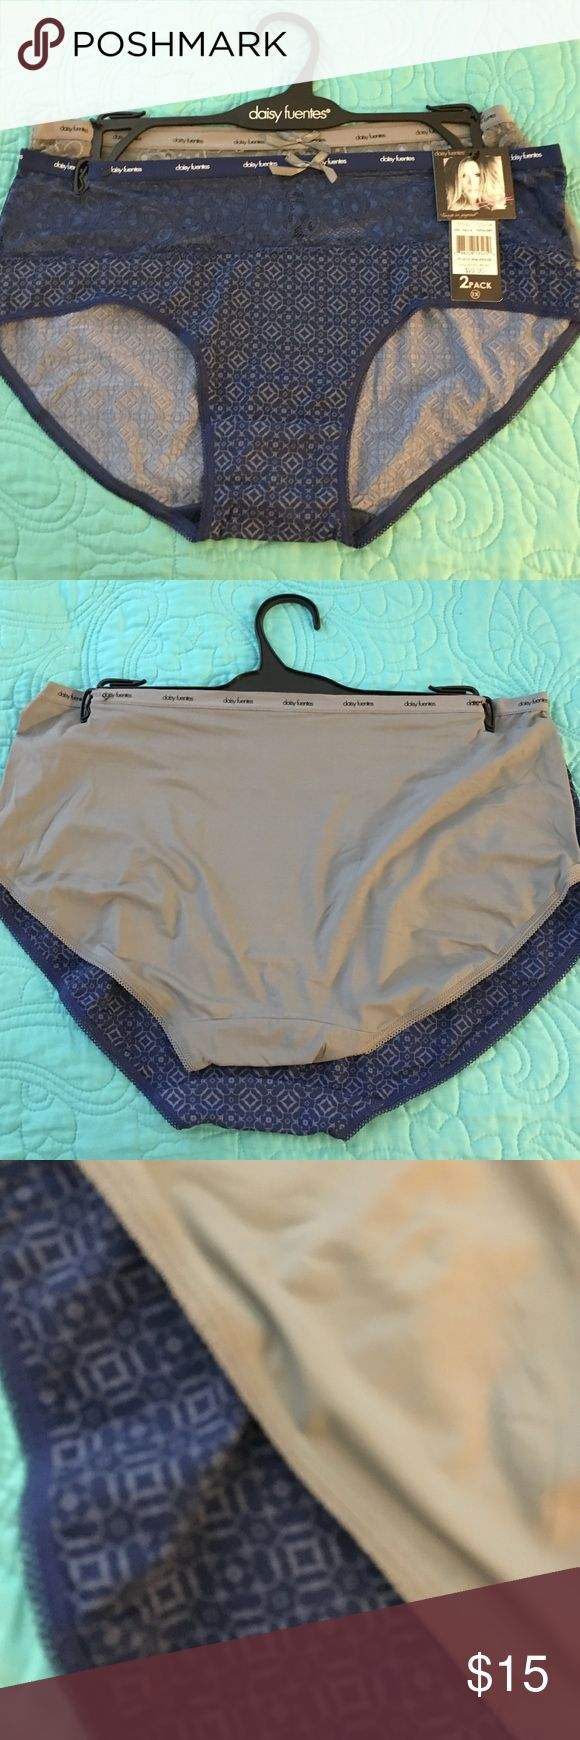 NWT Daisy Fuentes 2 pack lace trim hipsters 1X New! NWT Daisy Fuentes full figure 2 pack lace trim hipsters 1X. One navy blue print, one gray. 90/10 nylon elastane. Really pretty. Retail $22 Daisy Fuentes Intimates & Sleepwear Panties